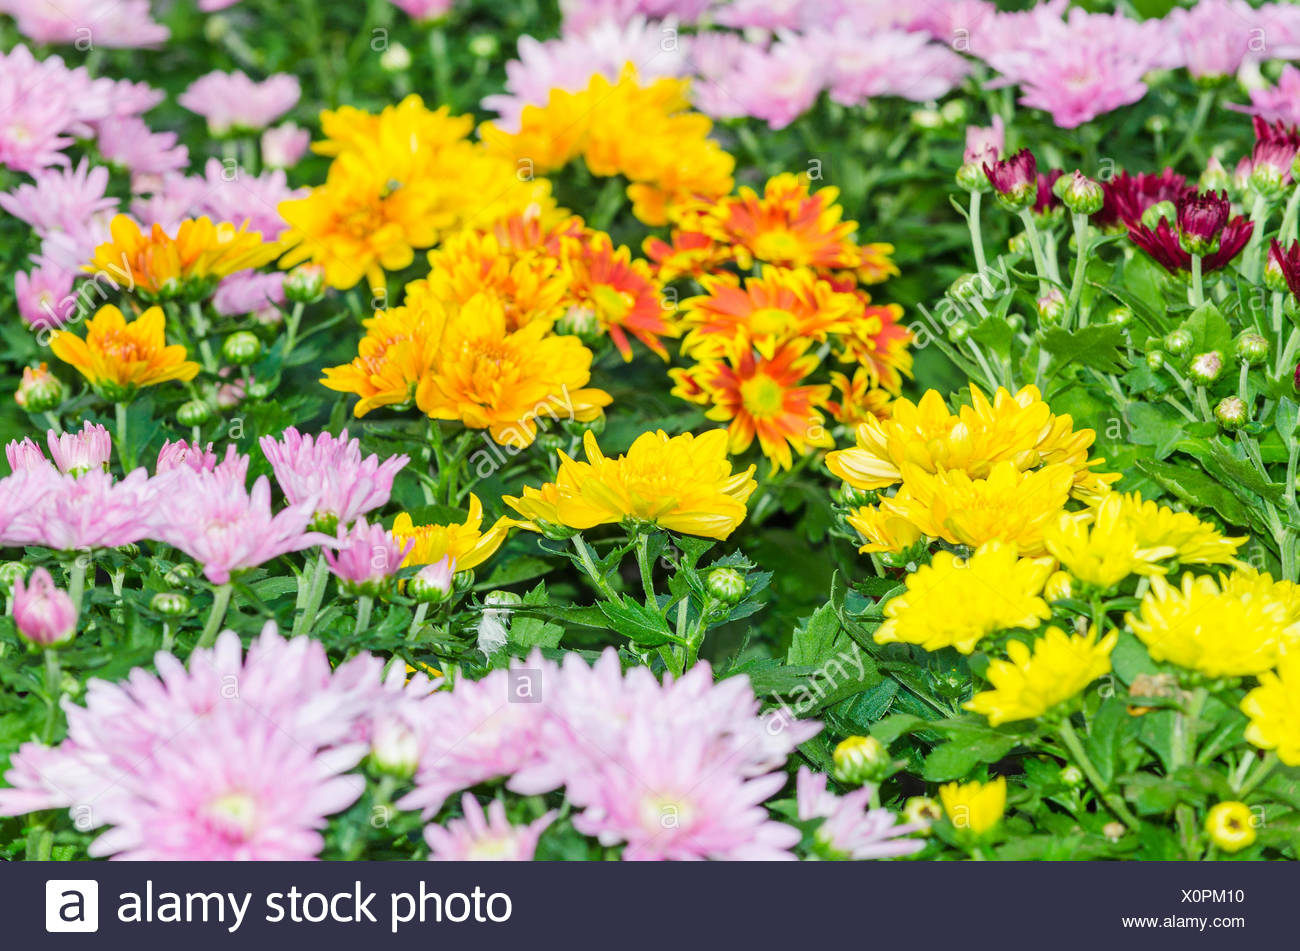 Types of flowers stock photos types of flowers stock images alamy different types of flowers stock image izmirmasajfo